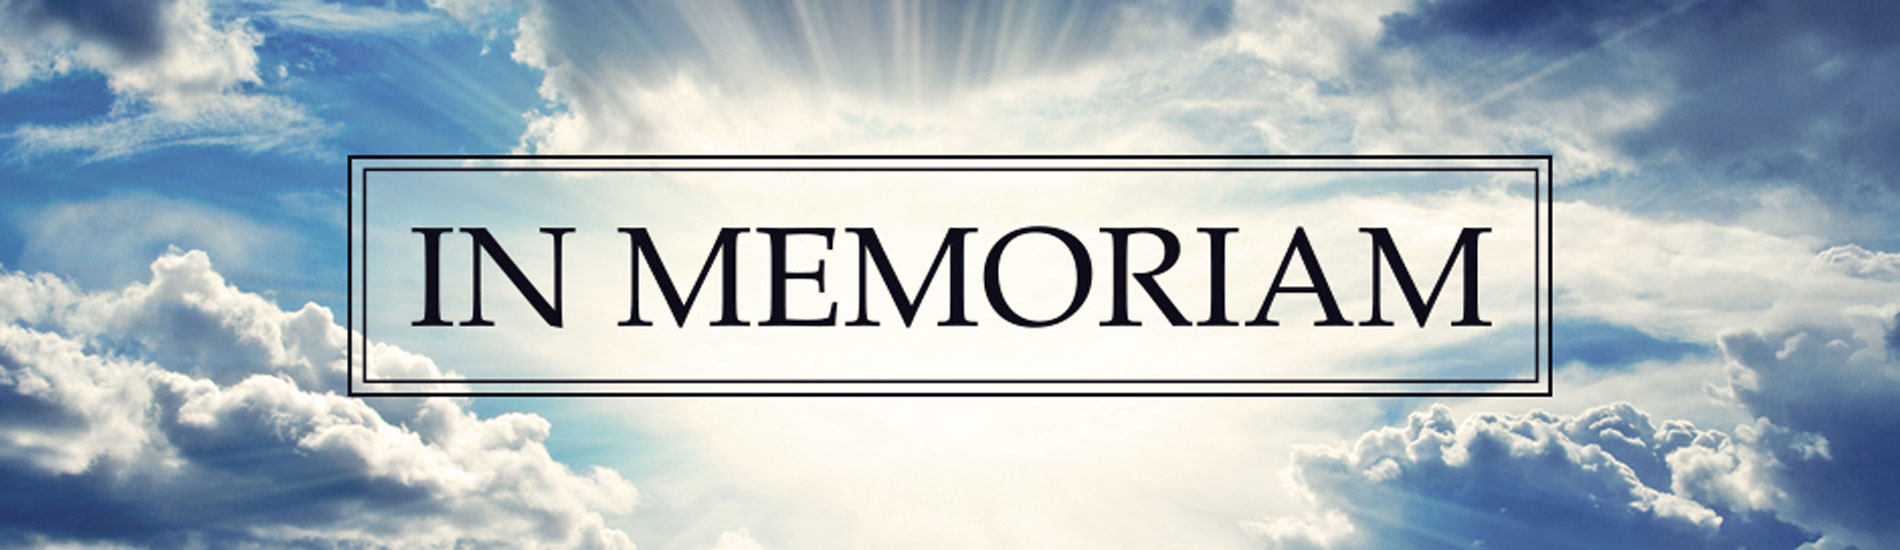 in memoriam clip art www imgkid com the image kid has it memorial clip art with poppies memorial clip art for deceased family members